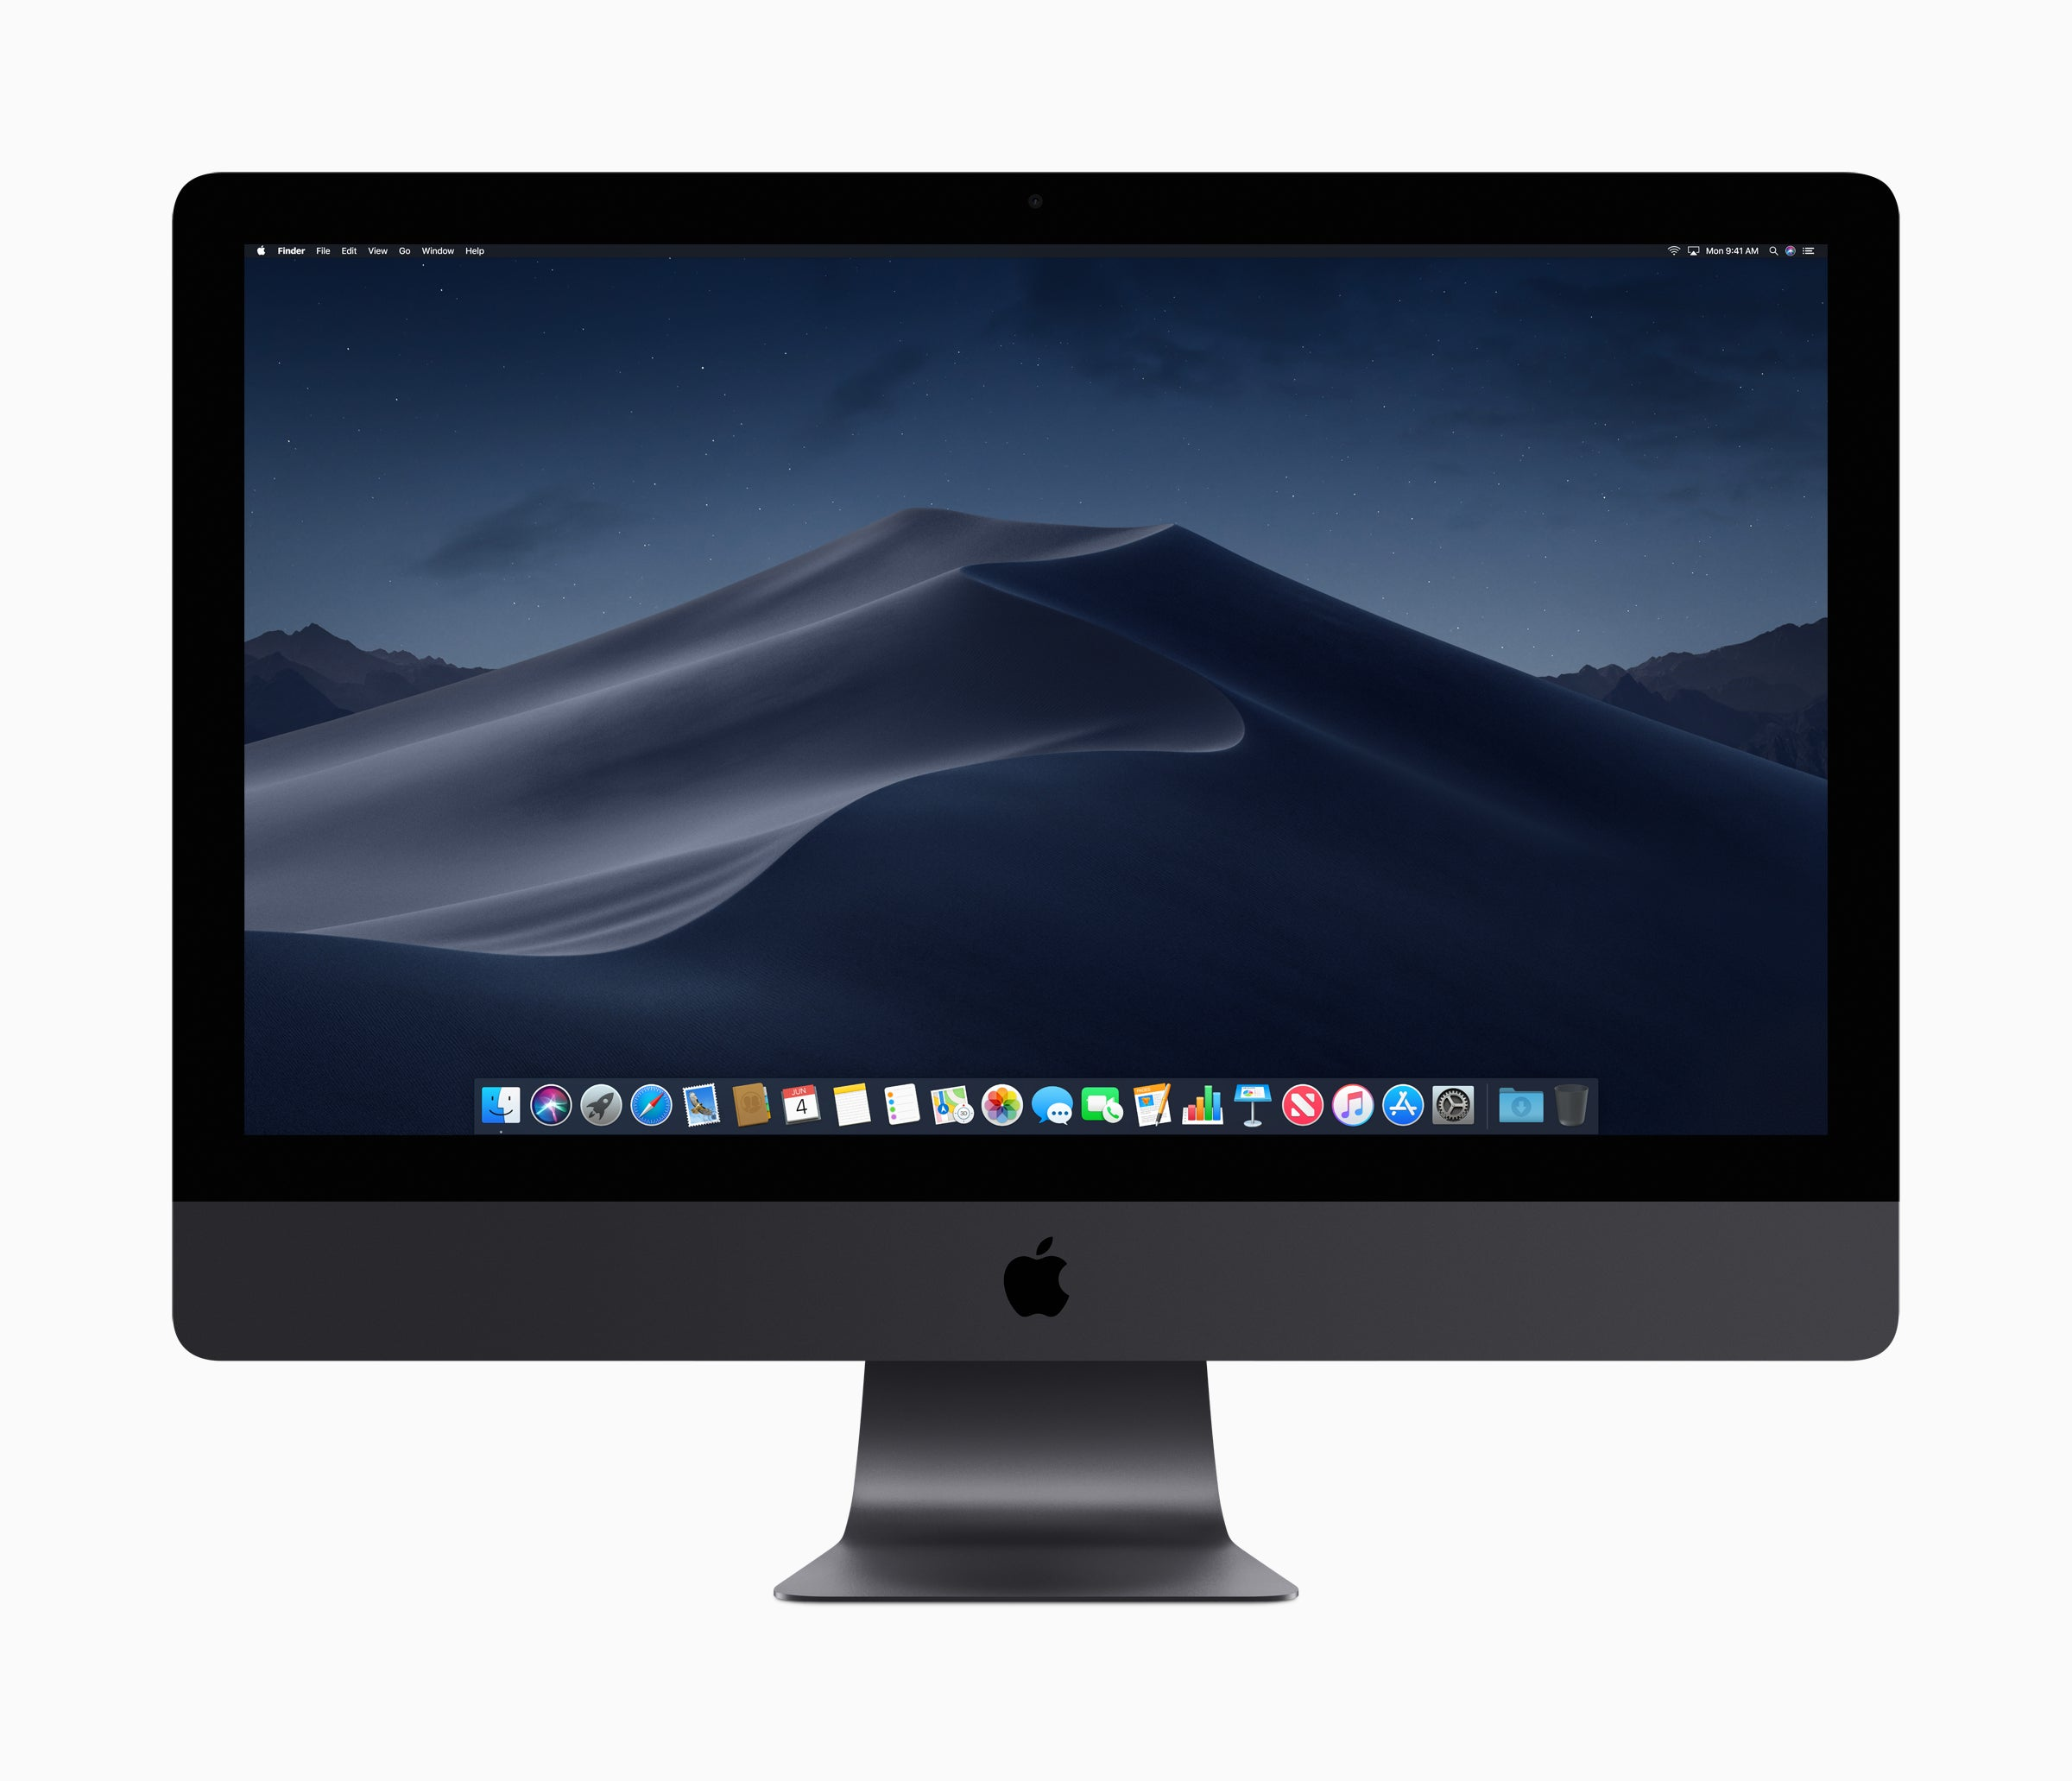 imac apple mac pro macos mojave computer dark mode desktop macbook update today upgrade apples prepare continuity camera stacks introduces